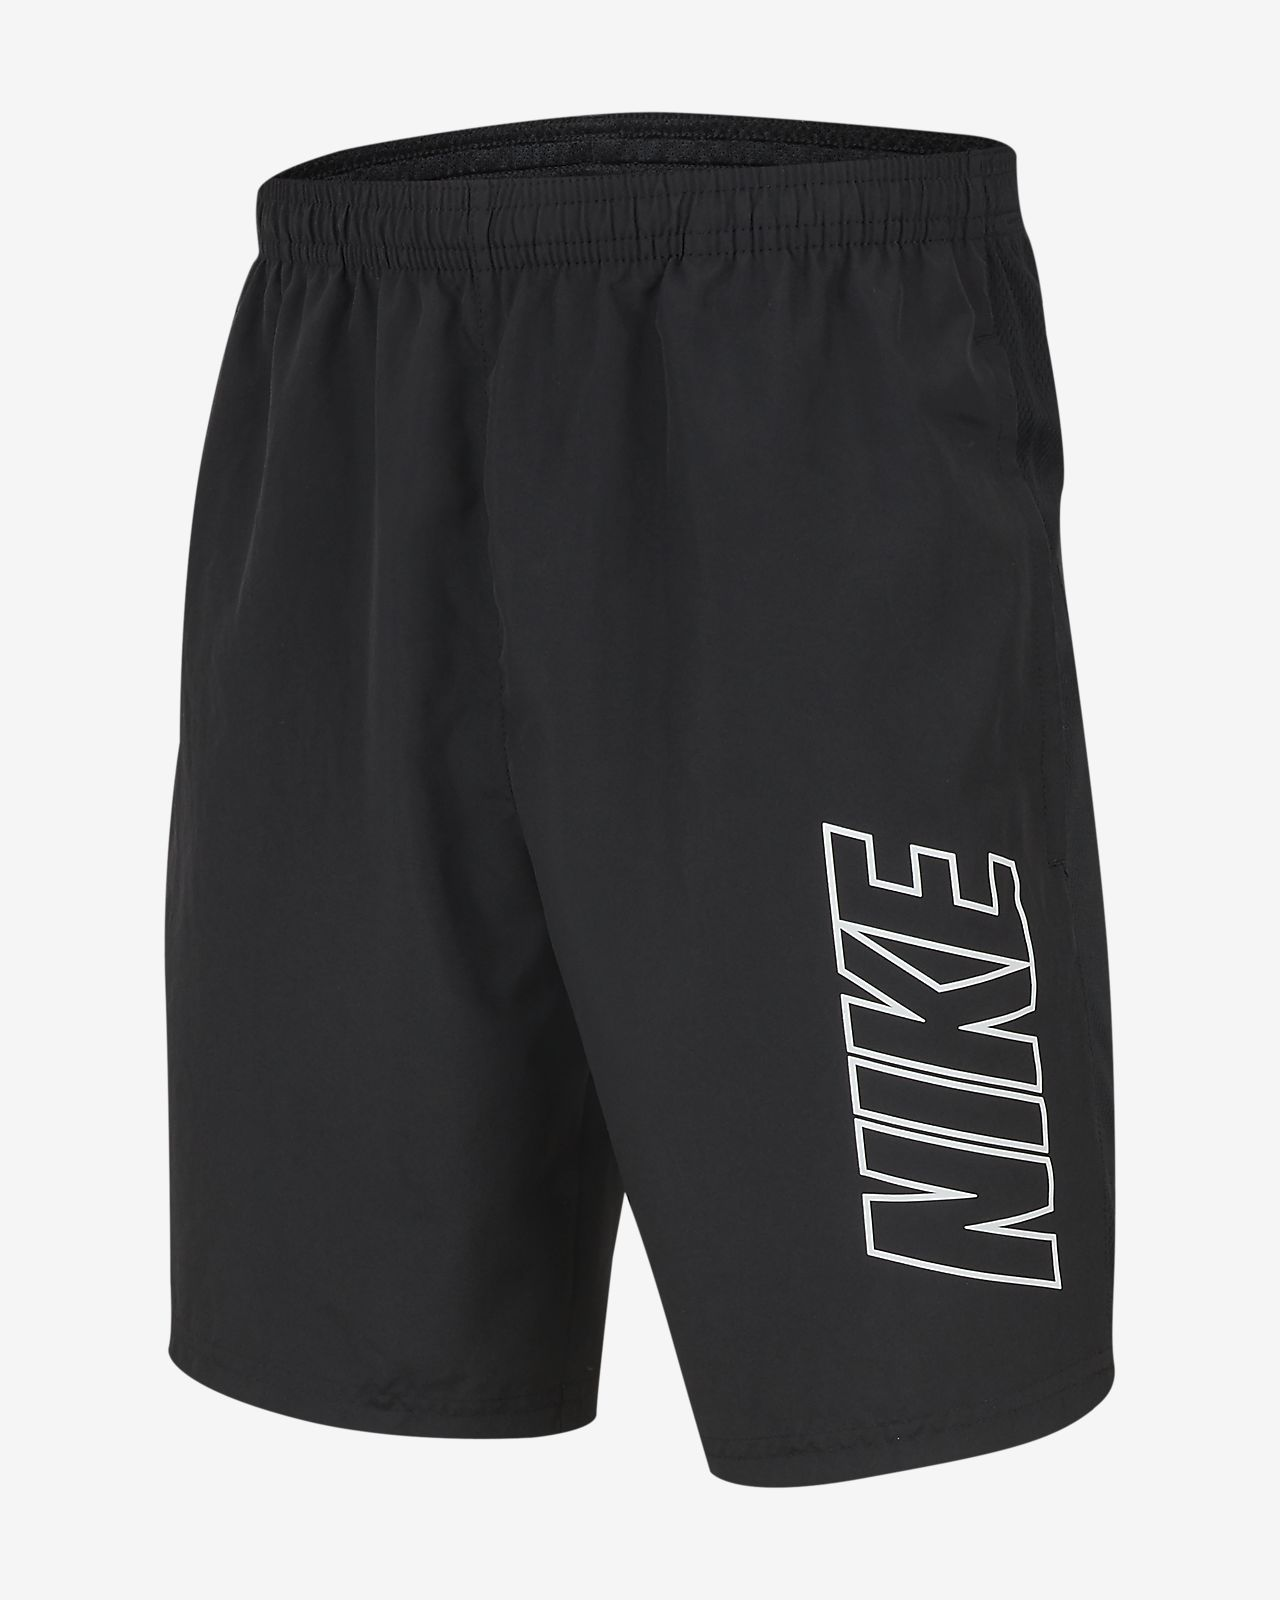 Nike Dri-FIT Academy Older Kids' Football Shorts